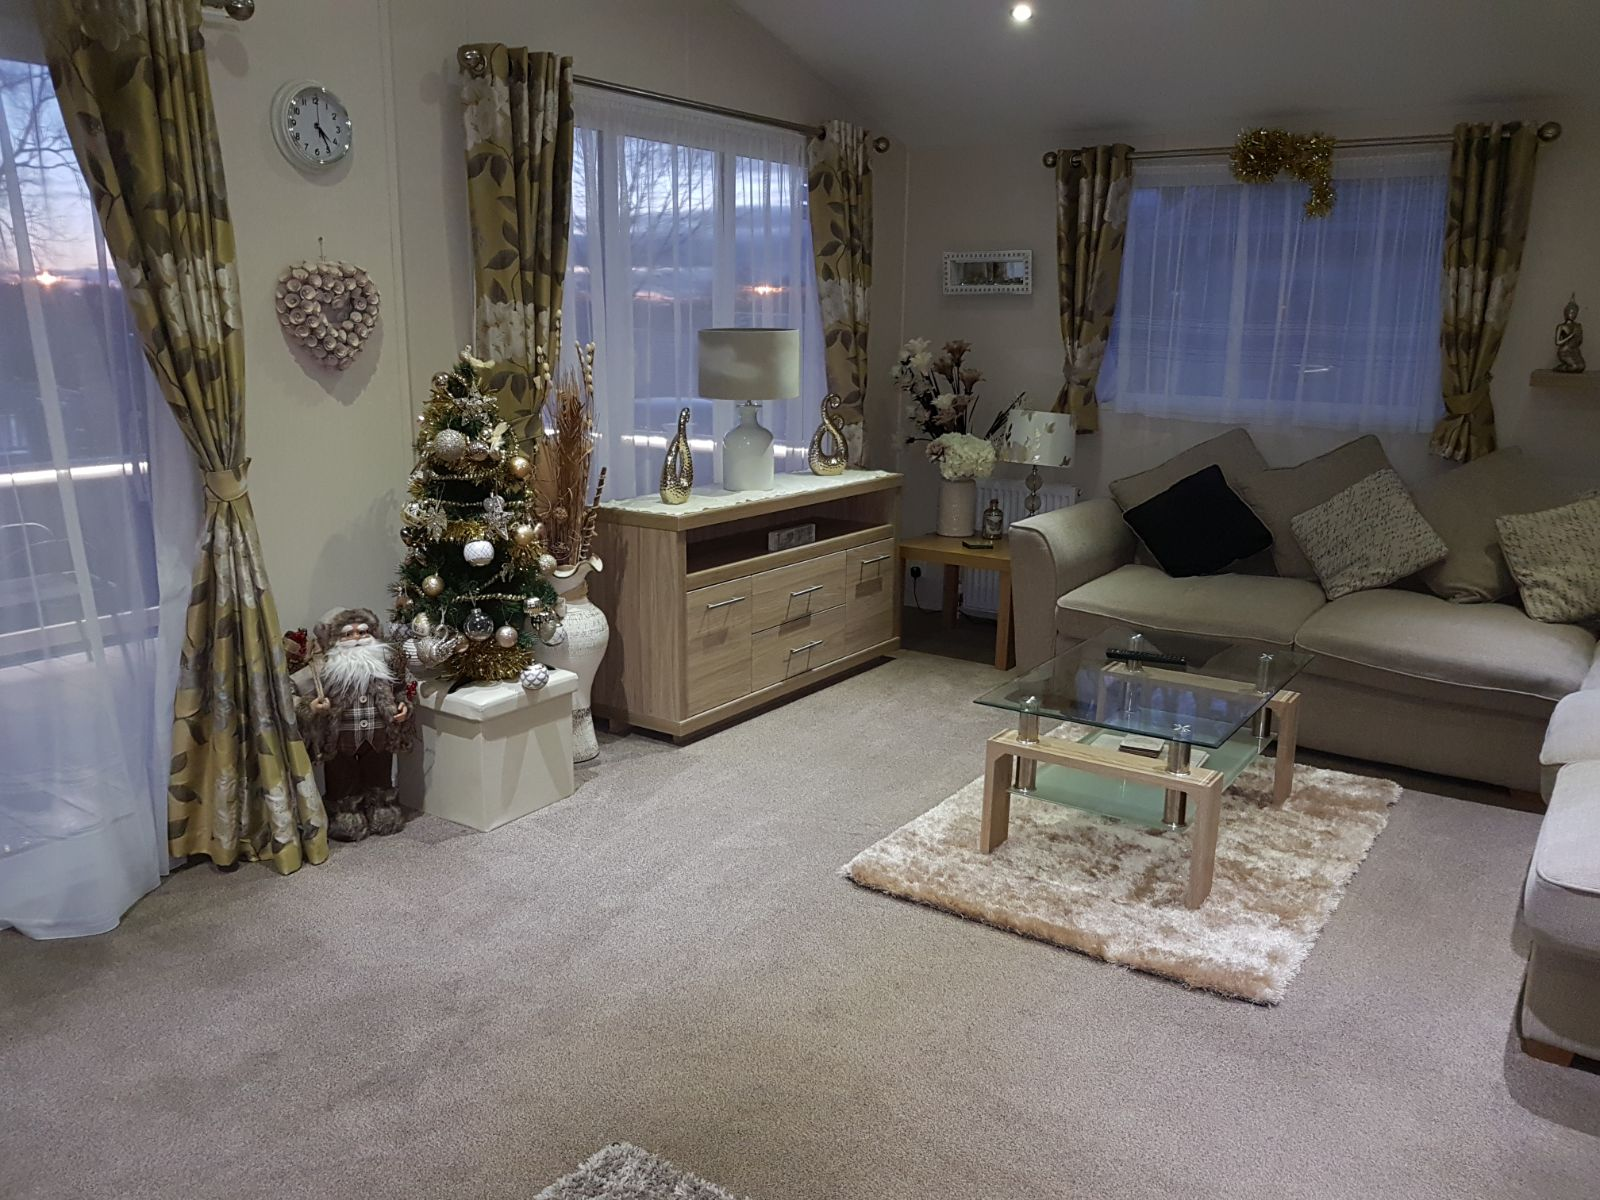 *172* Highfield Grange Holiday Park, Clacton-on-Sea, Essex